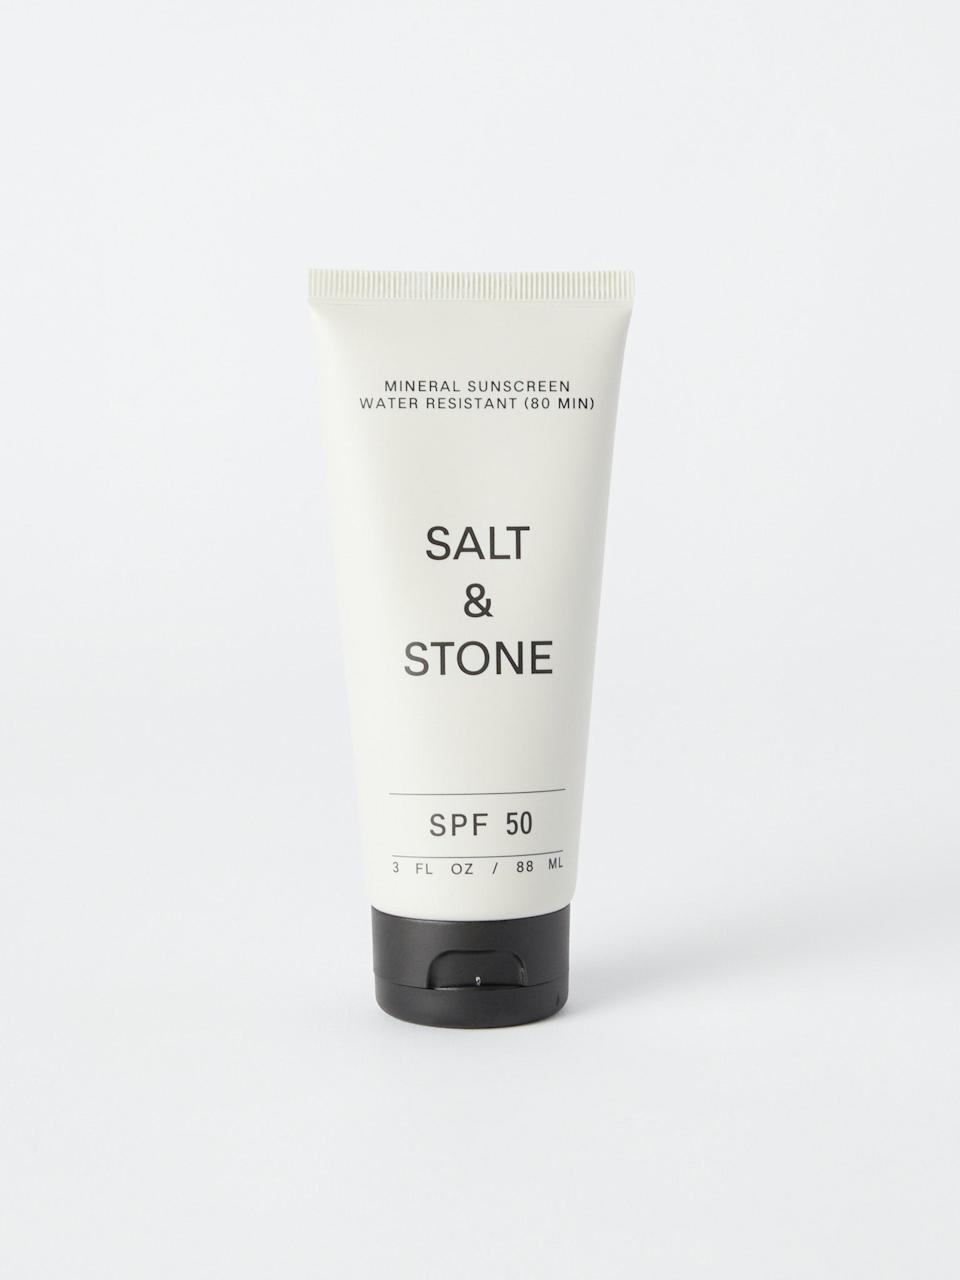 """<h3>Salt & Stone SPF 50 Sunscreen Lotion</h3><br>SPF 50 protection meets skin-care ingredients like rosehip oil and hyaluronic acid in this unscented, non-greasy sunscreen by Los Angeles-based brand Salt & Stone.<br><br><br><strong>Salt & Stone</strong> SPF 50 Sunscreen Lotion, $, available at <a href=""""https://go.skimresources.com/?id=30283X879131&url=https%3A%2F%2Fwww.verishop.com%2Fproduct%2Fp1882124976163"""" rel=""""nofollow noopener"""" target=""""_blank"""" data-ylk=""""slk:Verishop"""" class=""""link rapid-noclick-resp"""">Verishop</a>"""